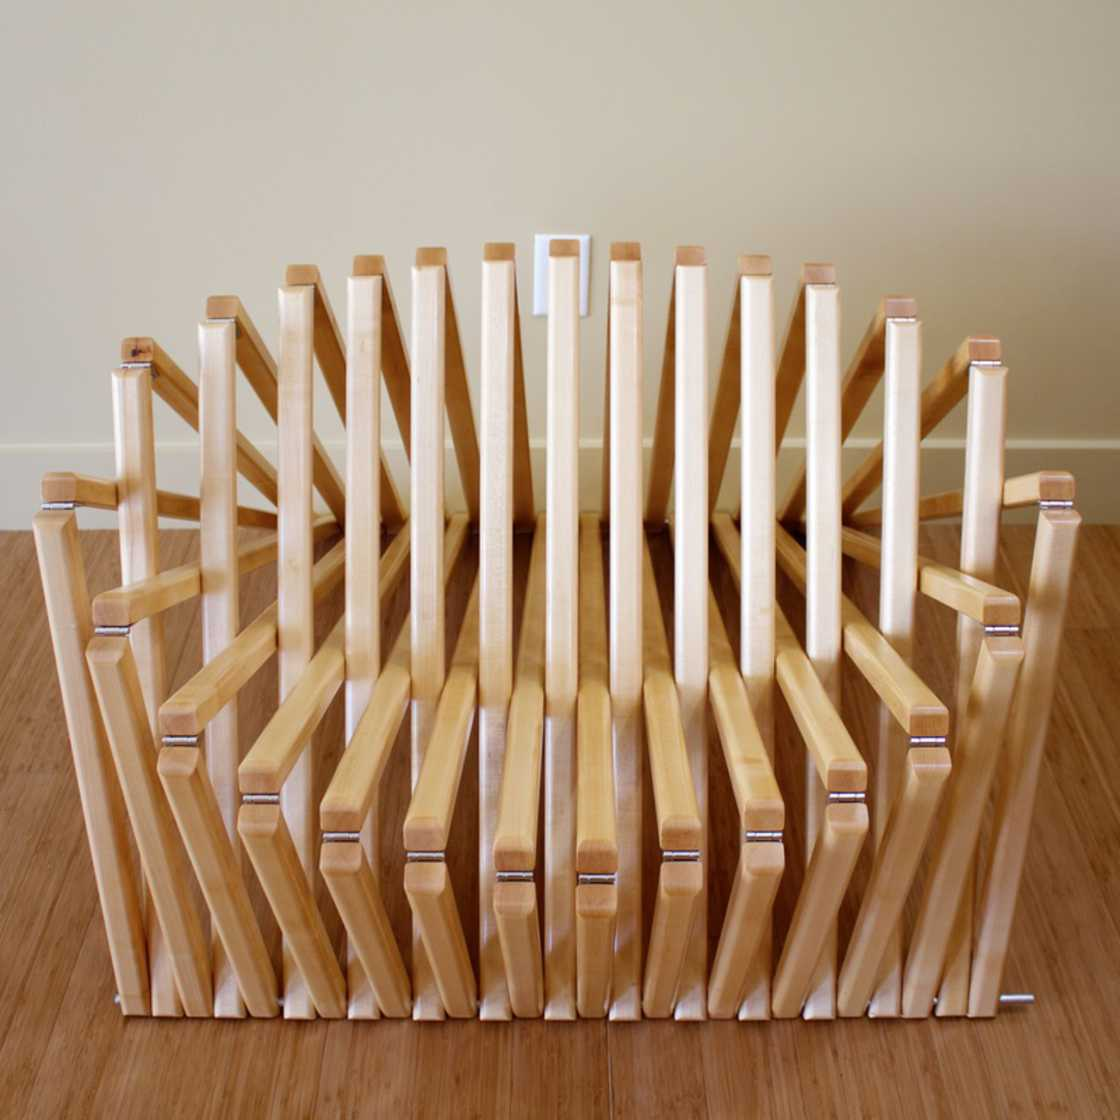 Amazing chairs that switch from 2D to 3D in less than a second